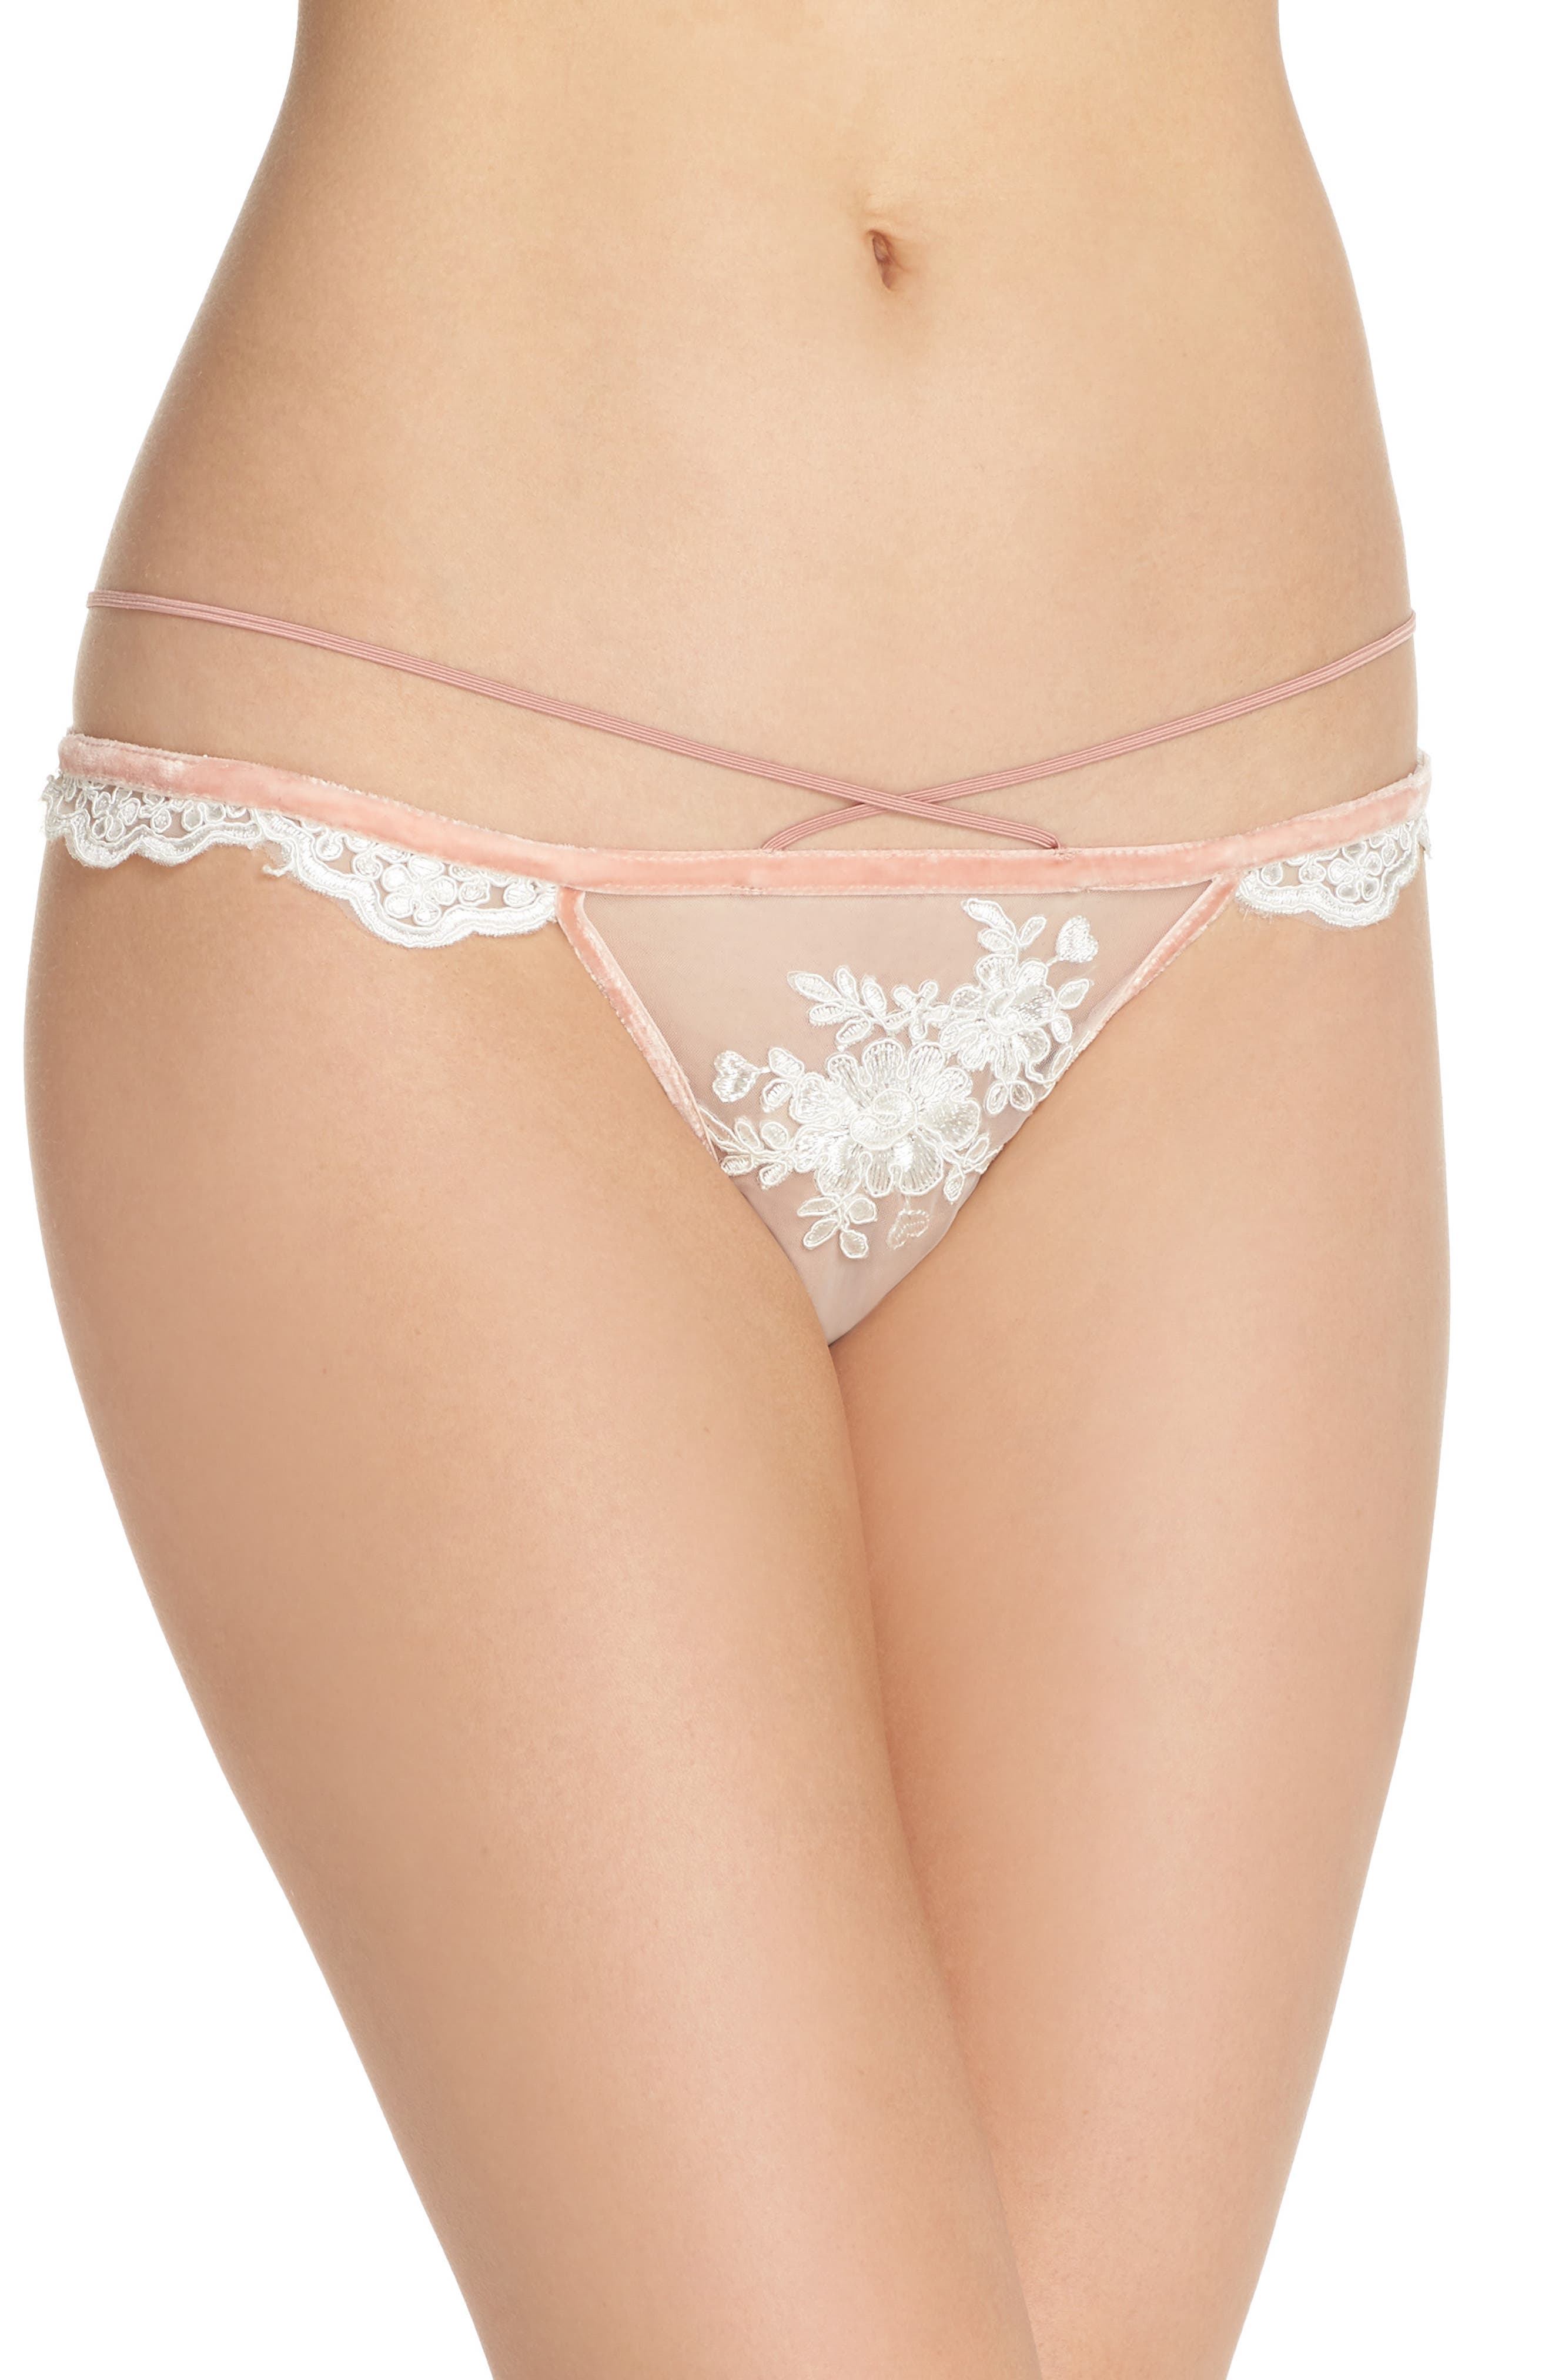 Noemi Strappy Scallop Lace Thong,                             Main thumbnail 1, color,                             900